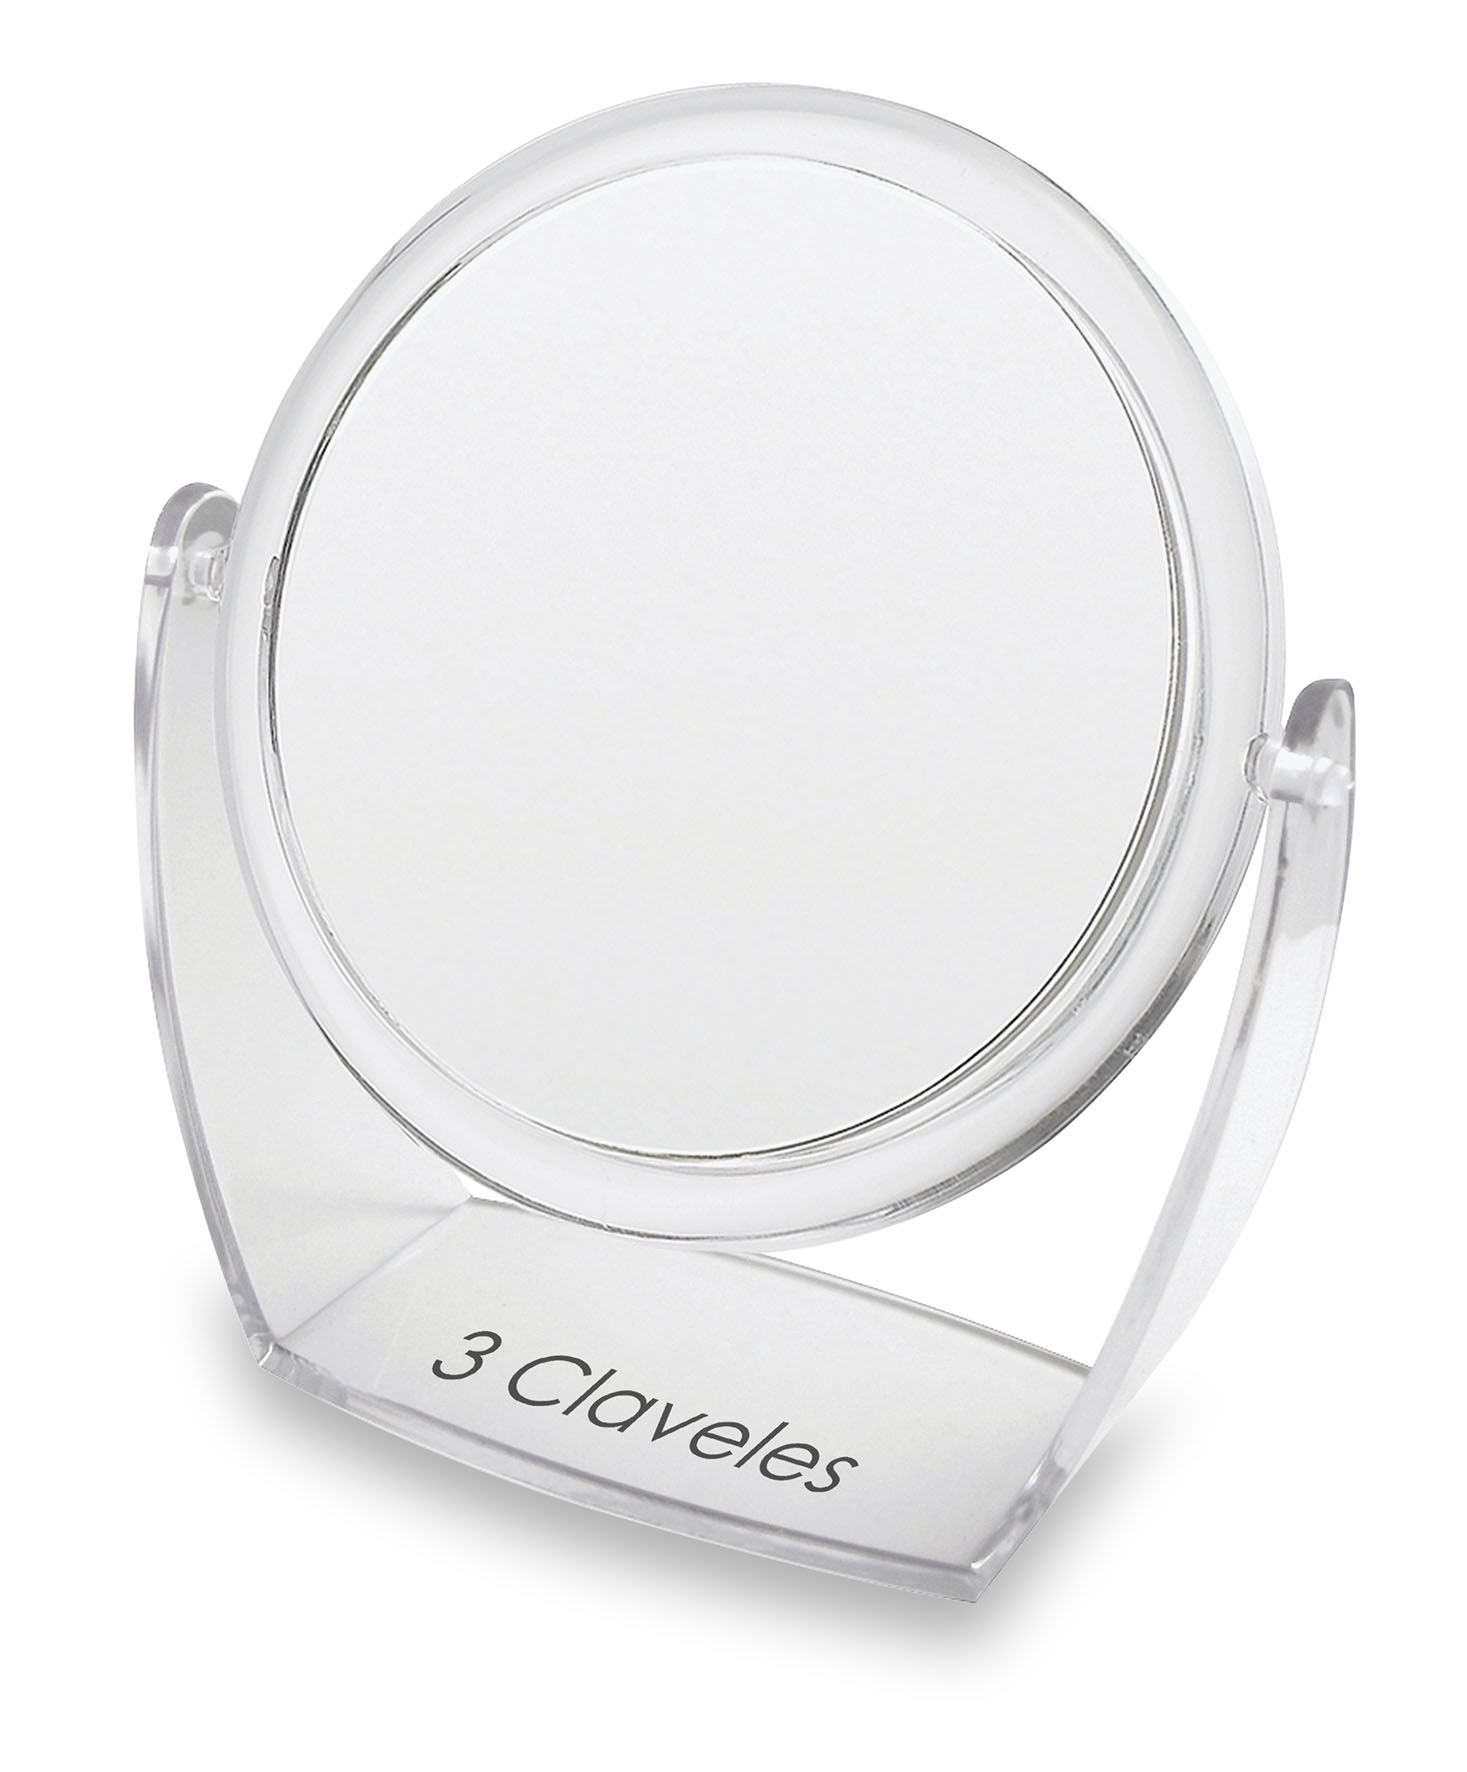 MAGNIFYING MIRROR WITH BASE 1x5 3C